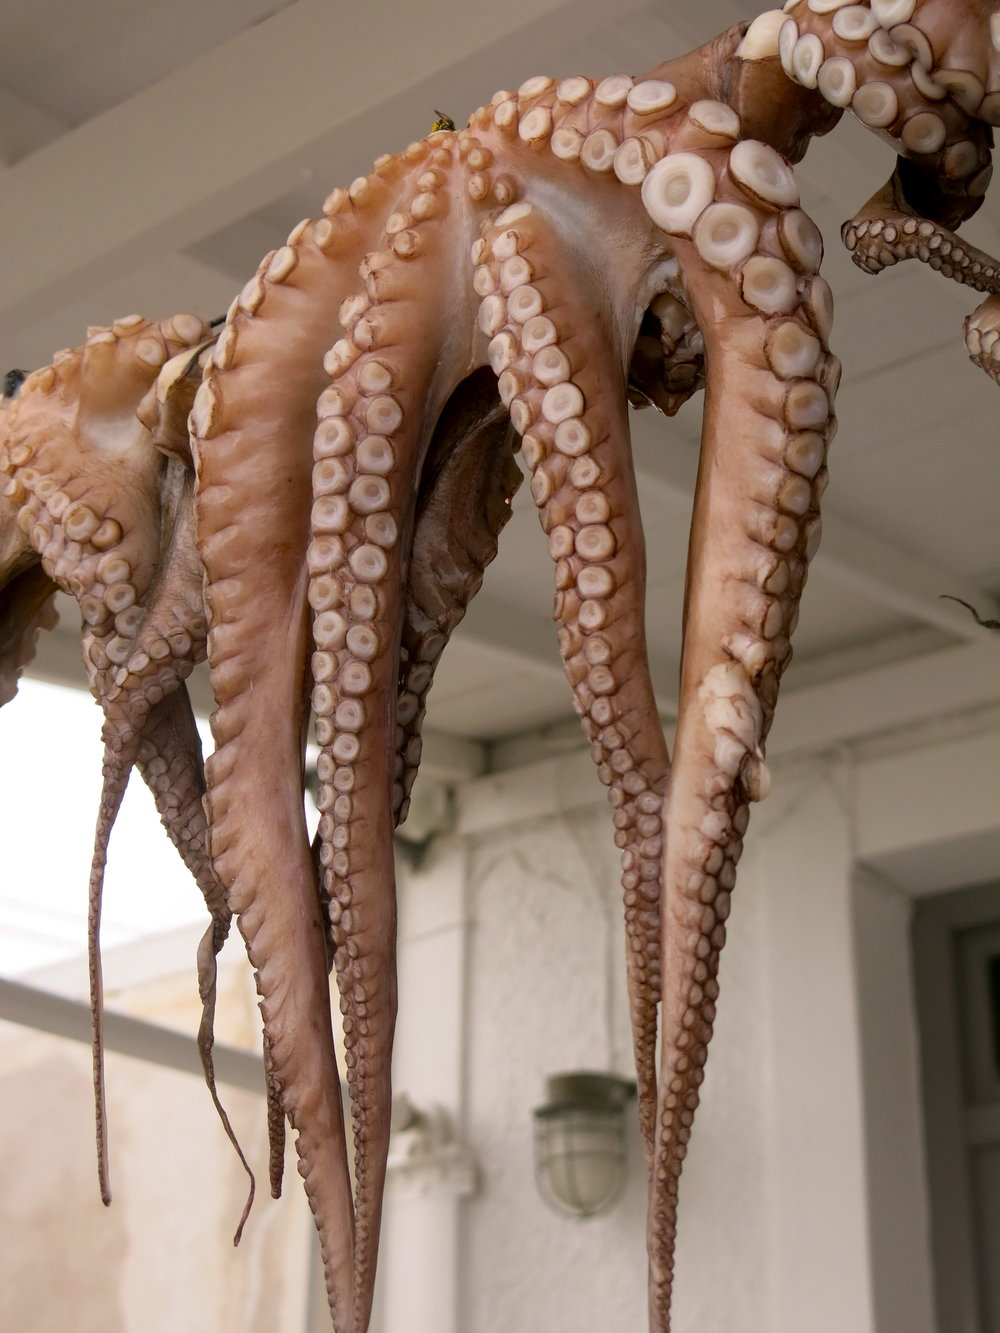 Octopus drying in the town of Parikia